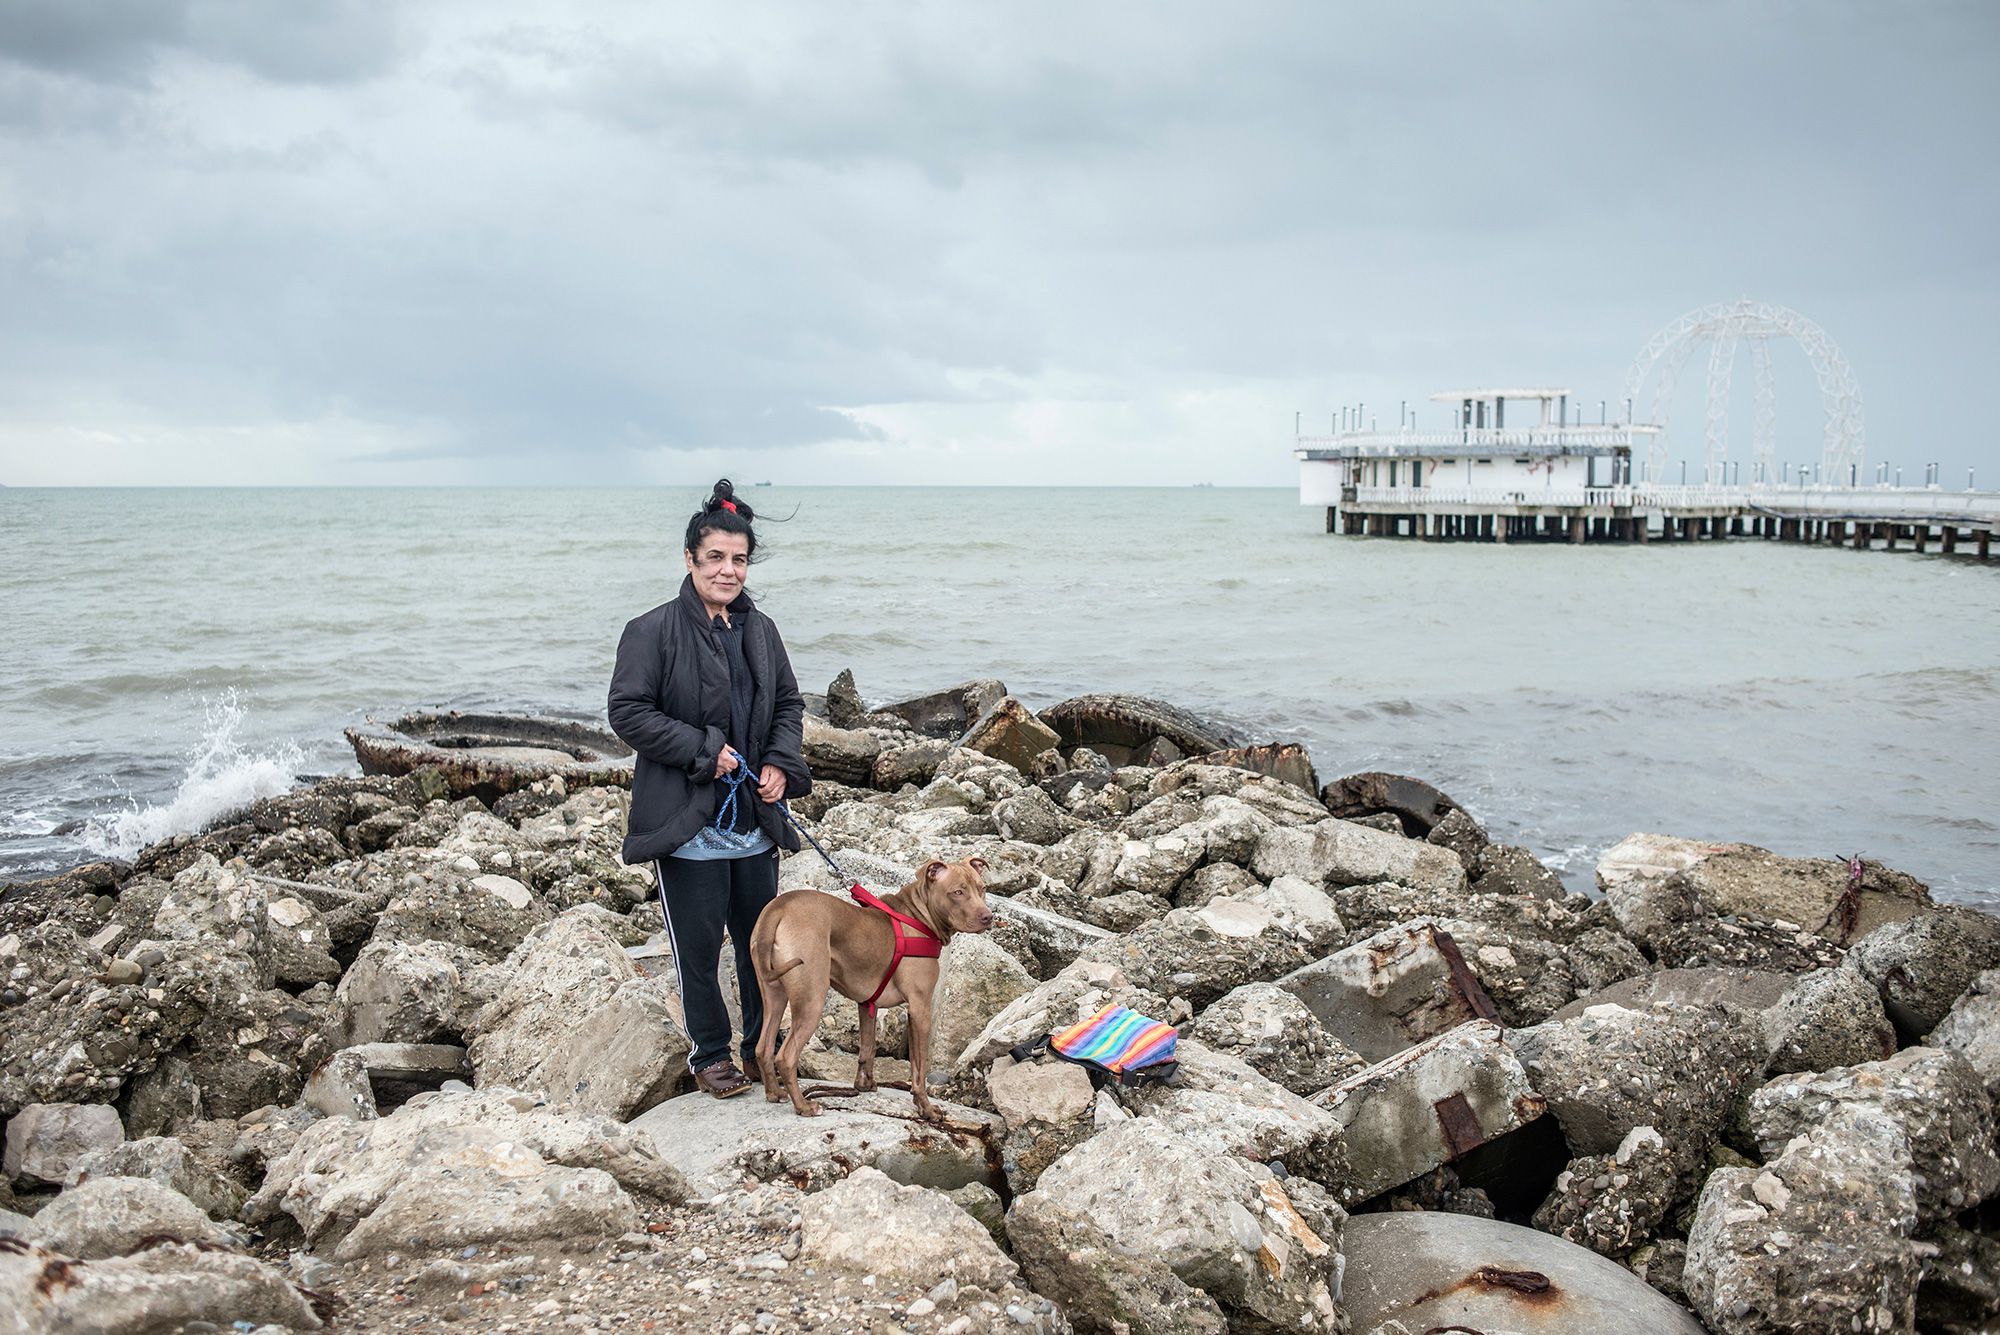 A woman walks a dog on a background of abandoned bunkers, Durres, Albania